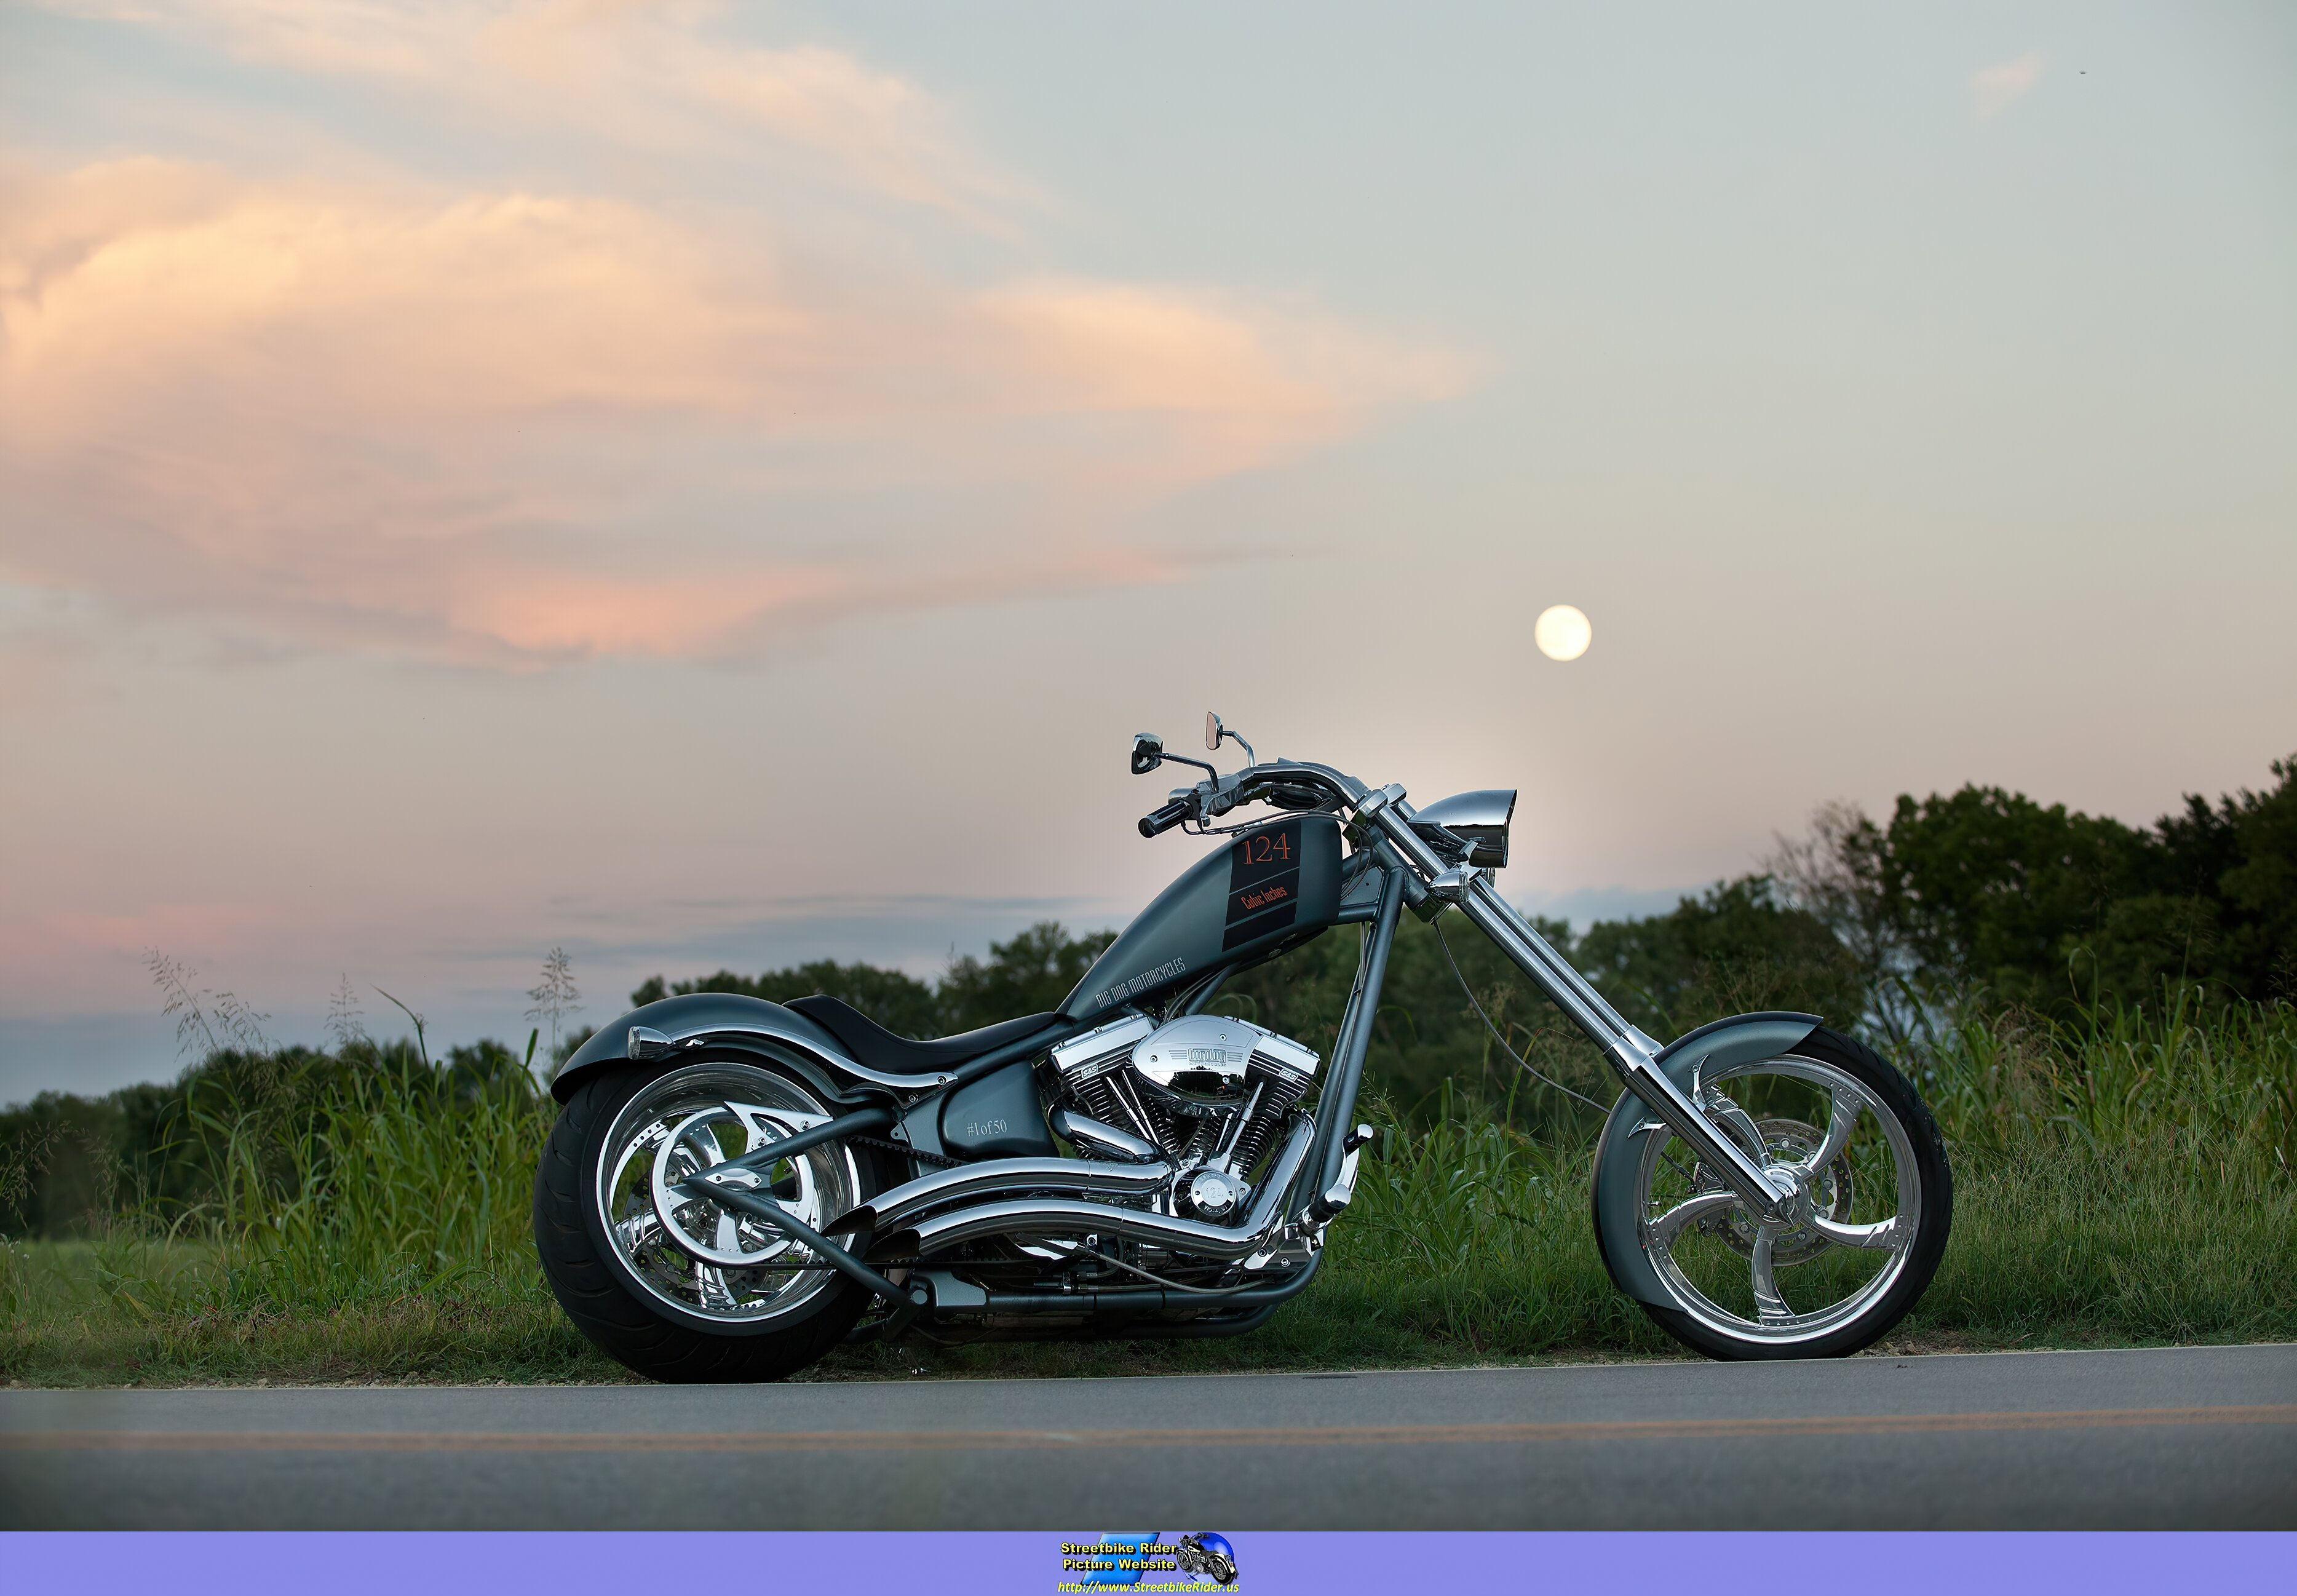 Scottys Choppers All Scottys Choppers - ID: 161423